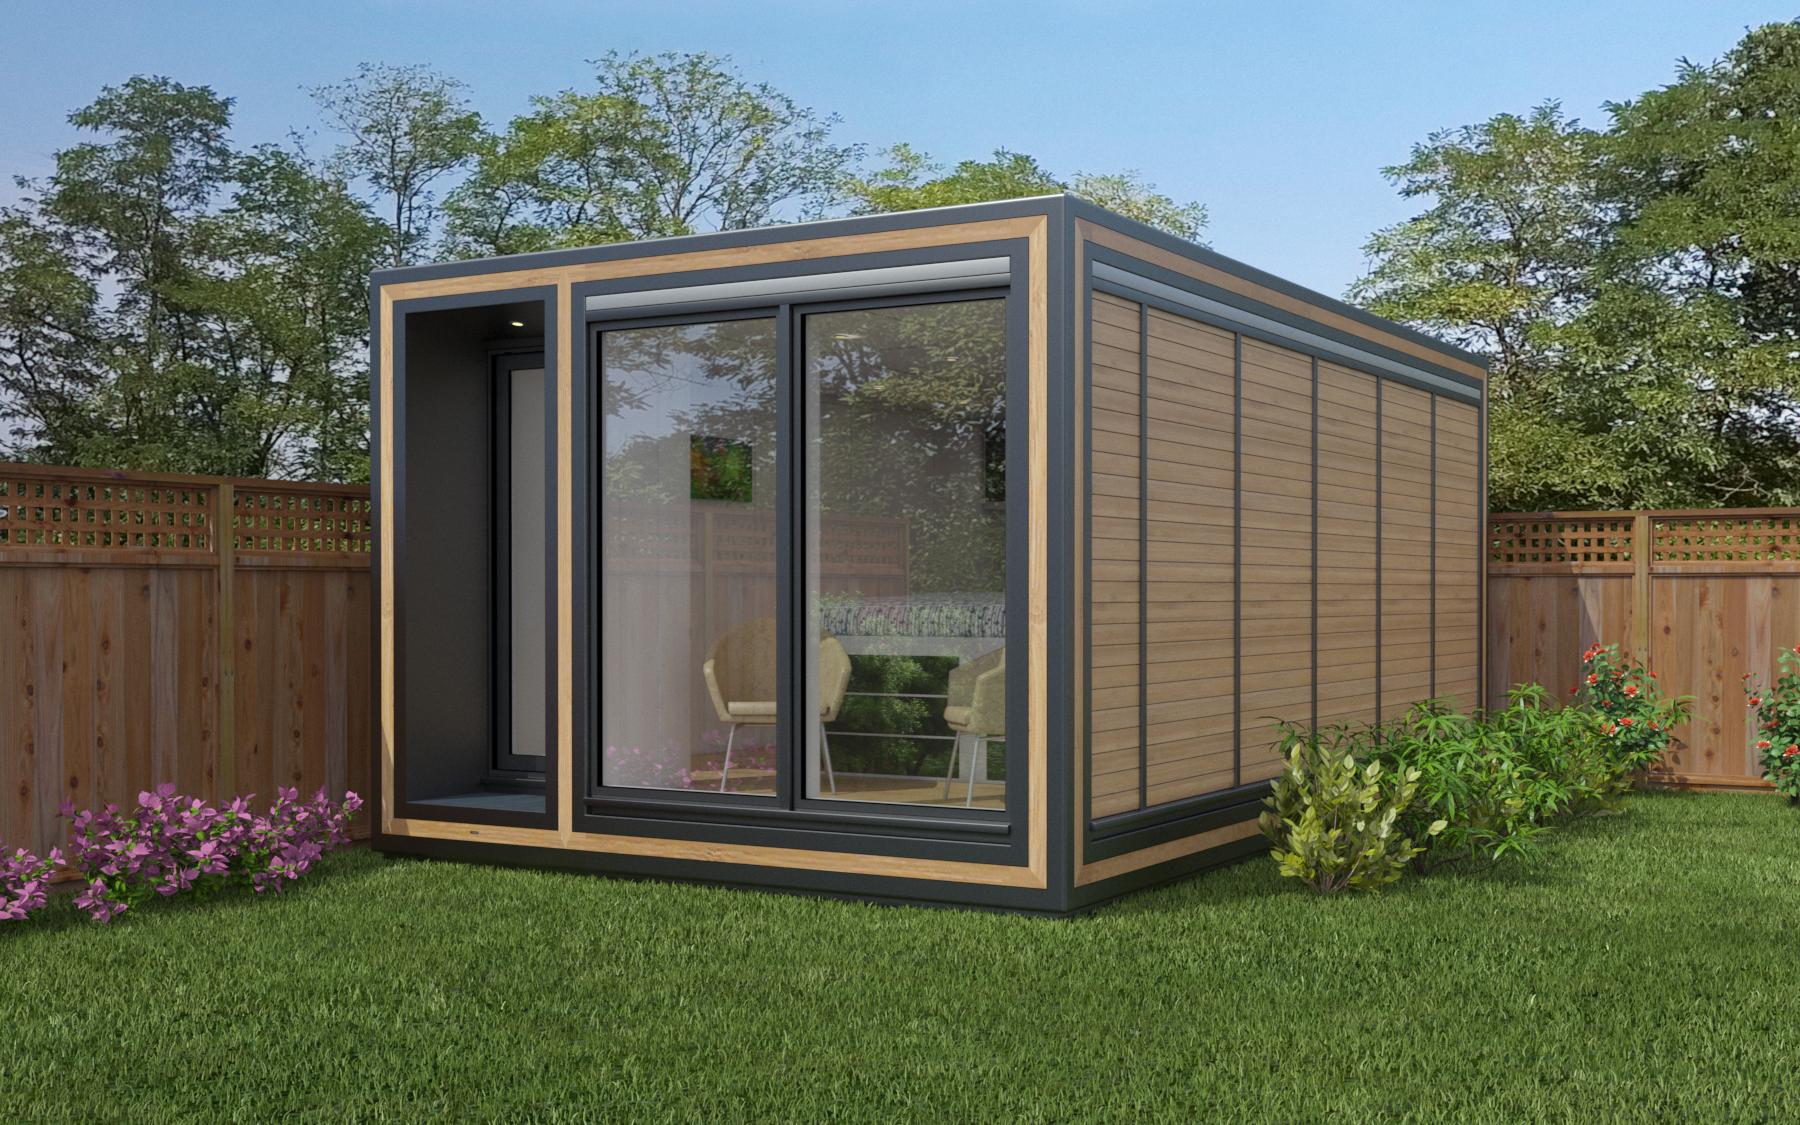 ZEDBOX 355  (3 x 5.5)  Internal Size: 3188 x 5888  External Size: 3658 x 6358  Bed Options: Single or Double  Kitchen Options: Micro or Premier  Wet Room Options: Yes  Portico: Yes  Price:  £32,000    Optional Extras    Request Zedbox Catalogue